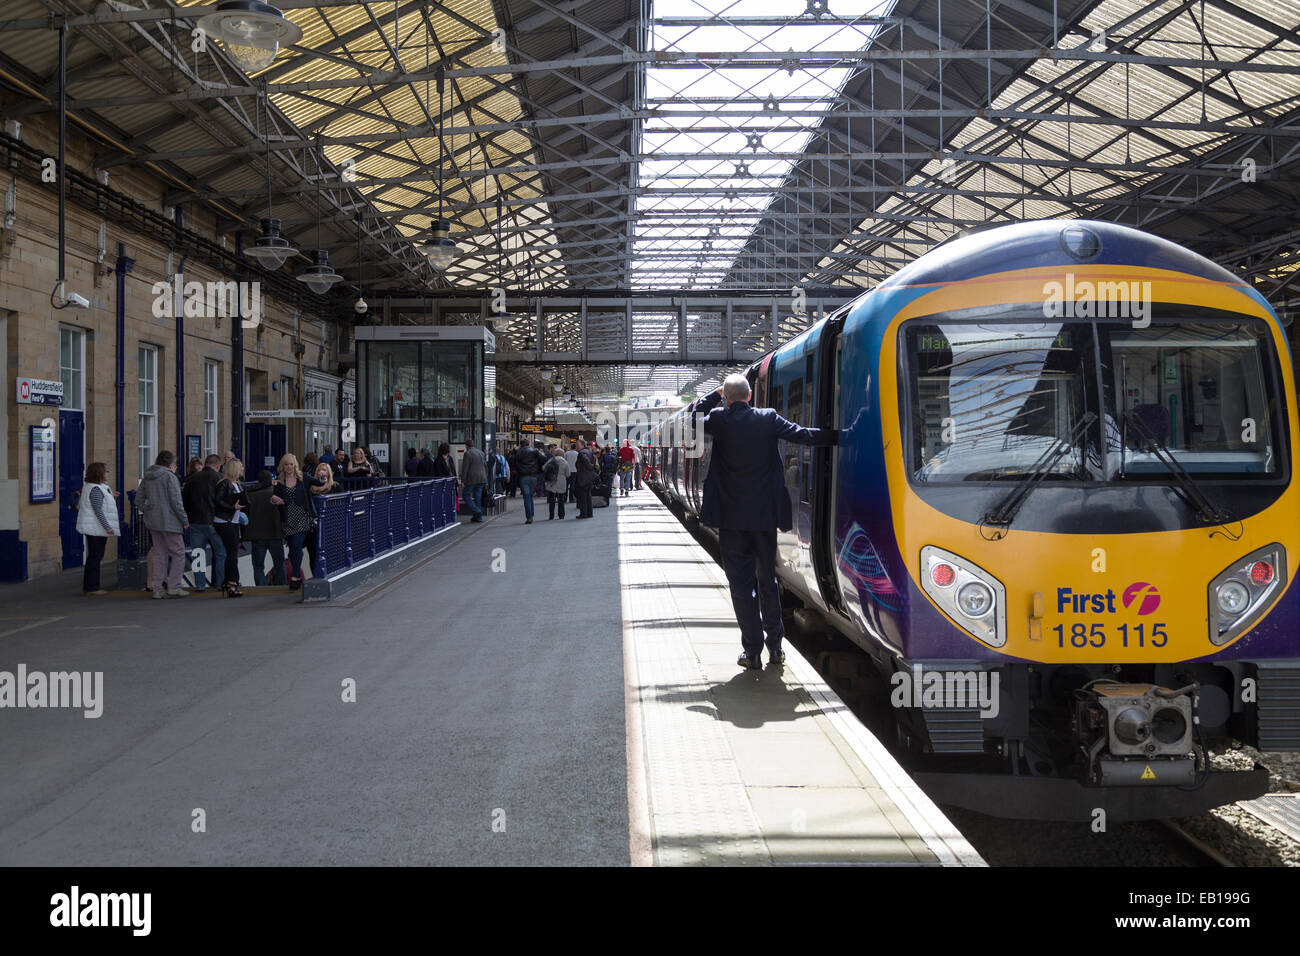 UK, Huddersfield, train station and First Transpennine Express train. - Stock Image